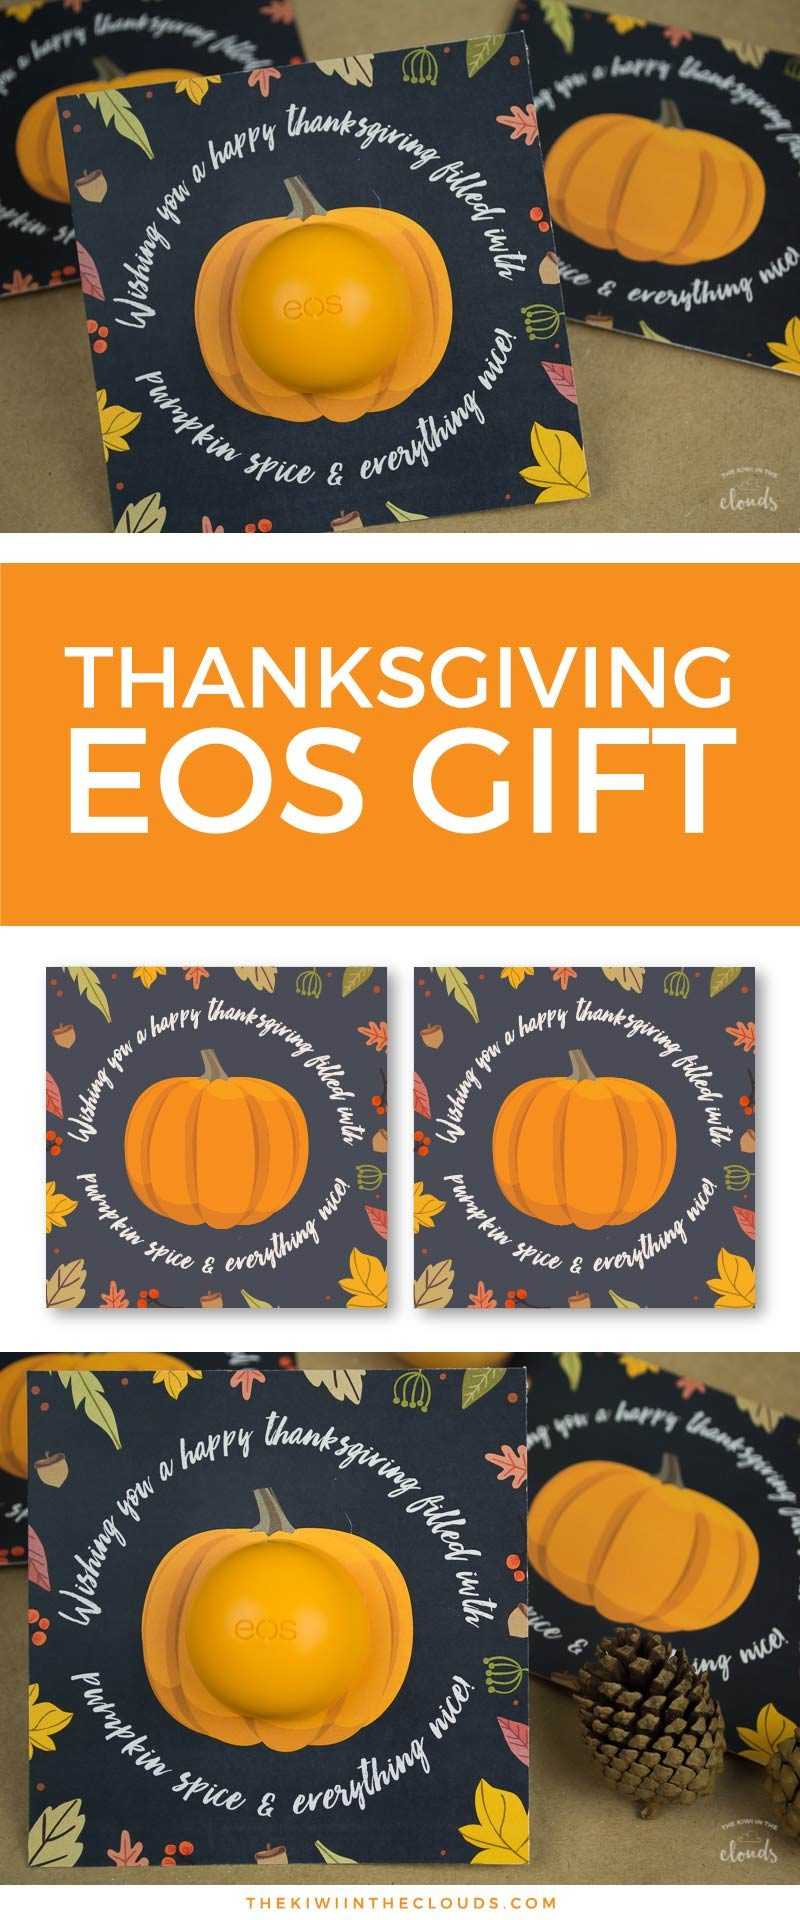 Thanksgiving Gifts | EOS gift | Small Gift Idea